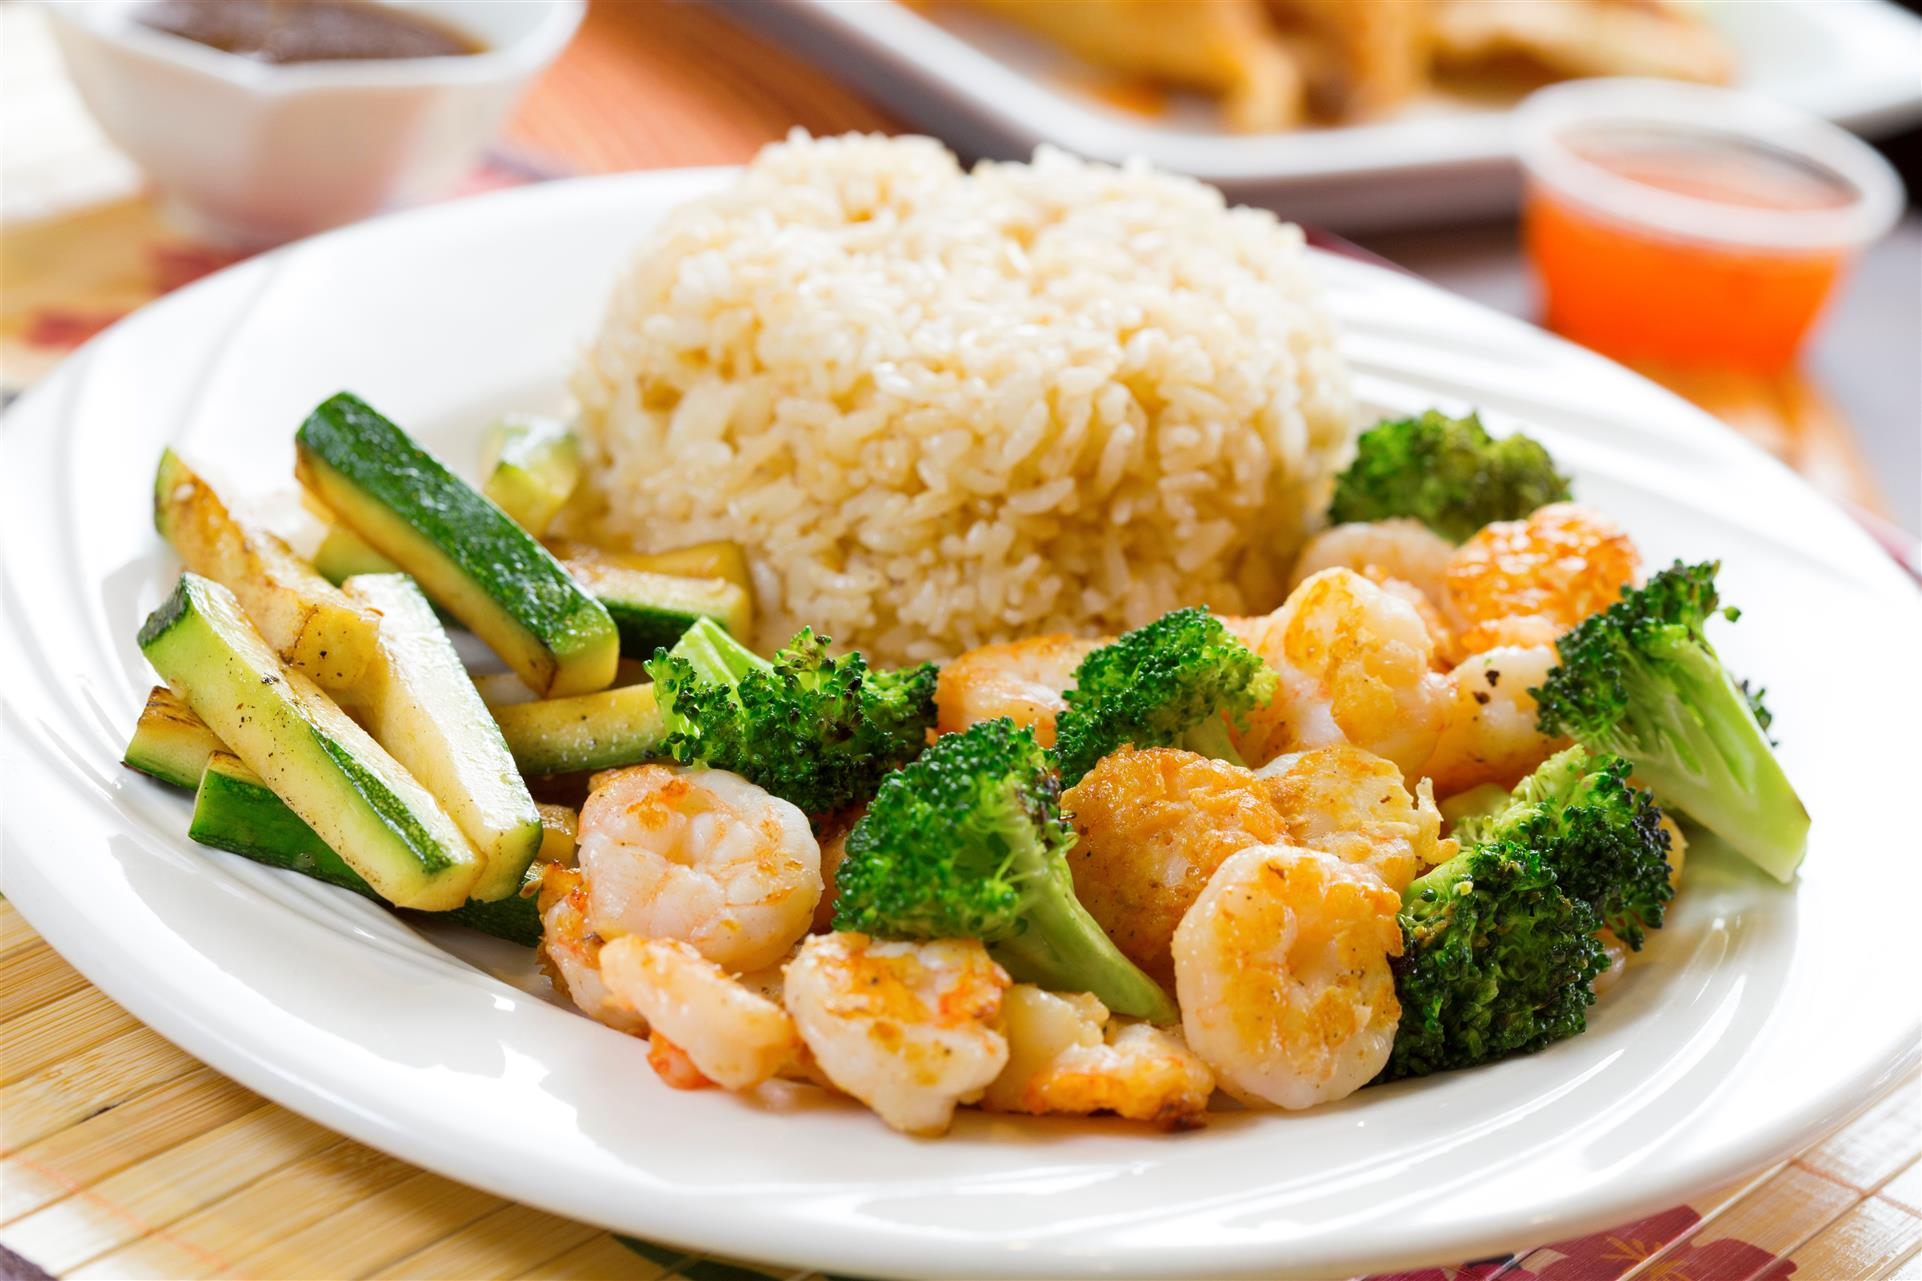 cooked shrimp and vegetables with a side of rice